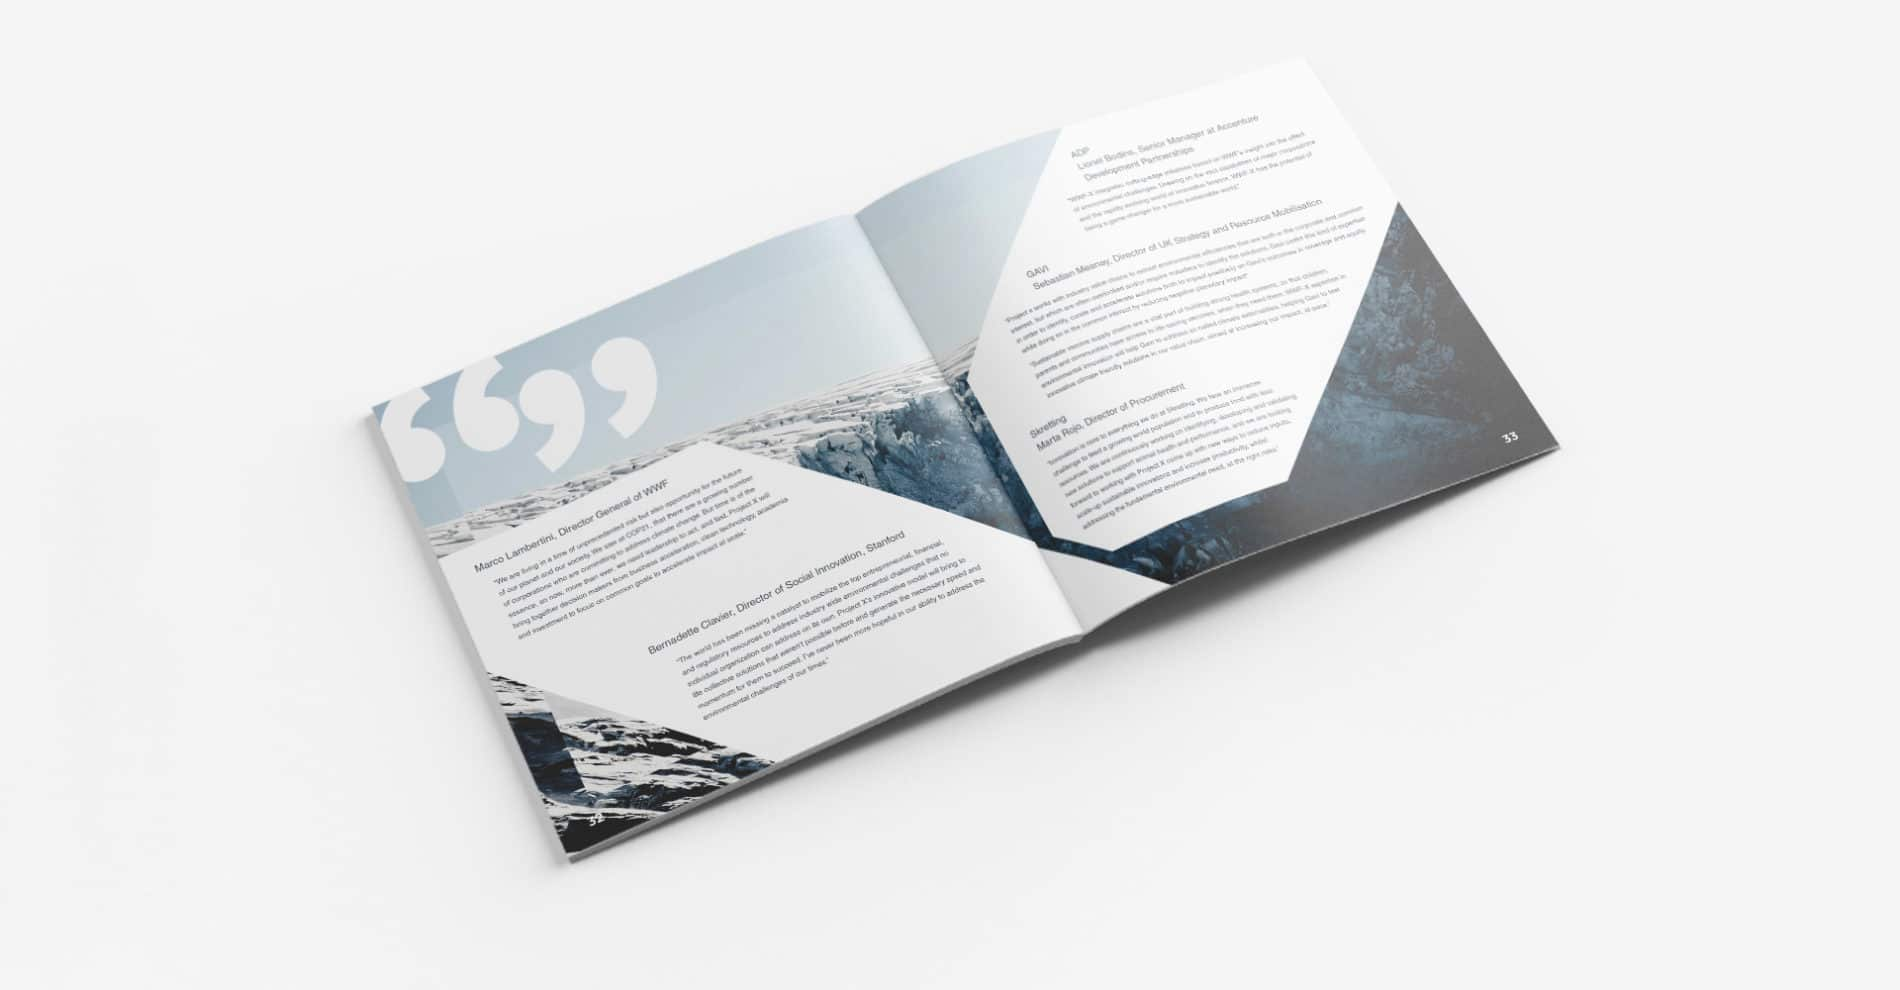 Our task was to create an 64 page brochure by focusing on WWFX's vital message